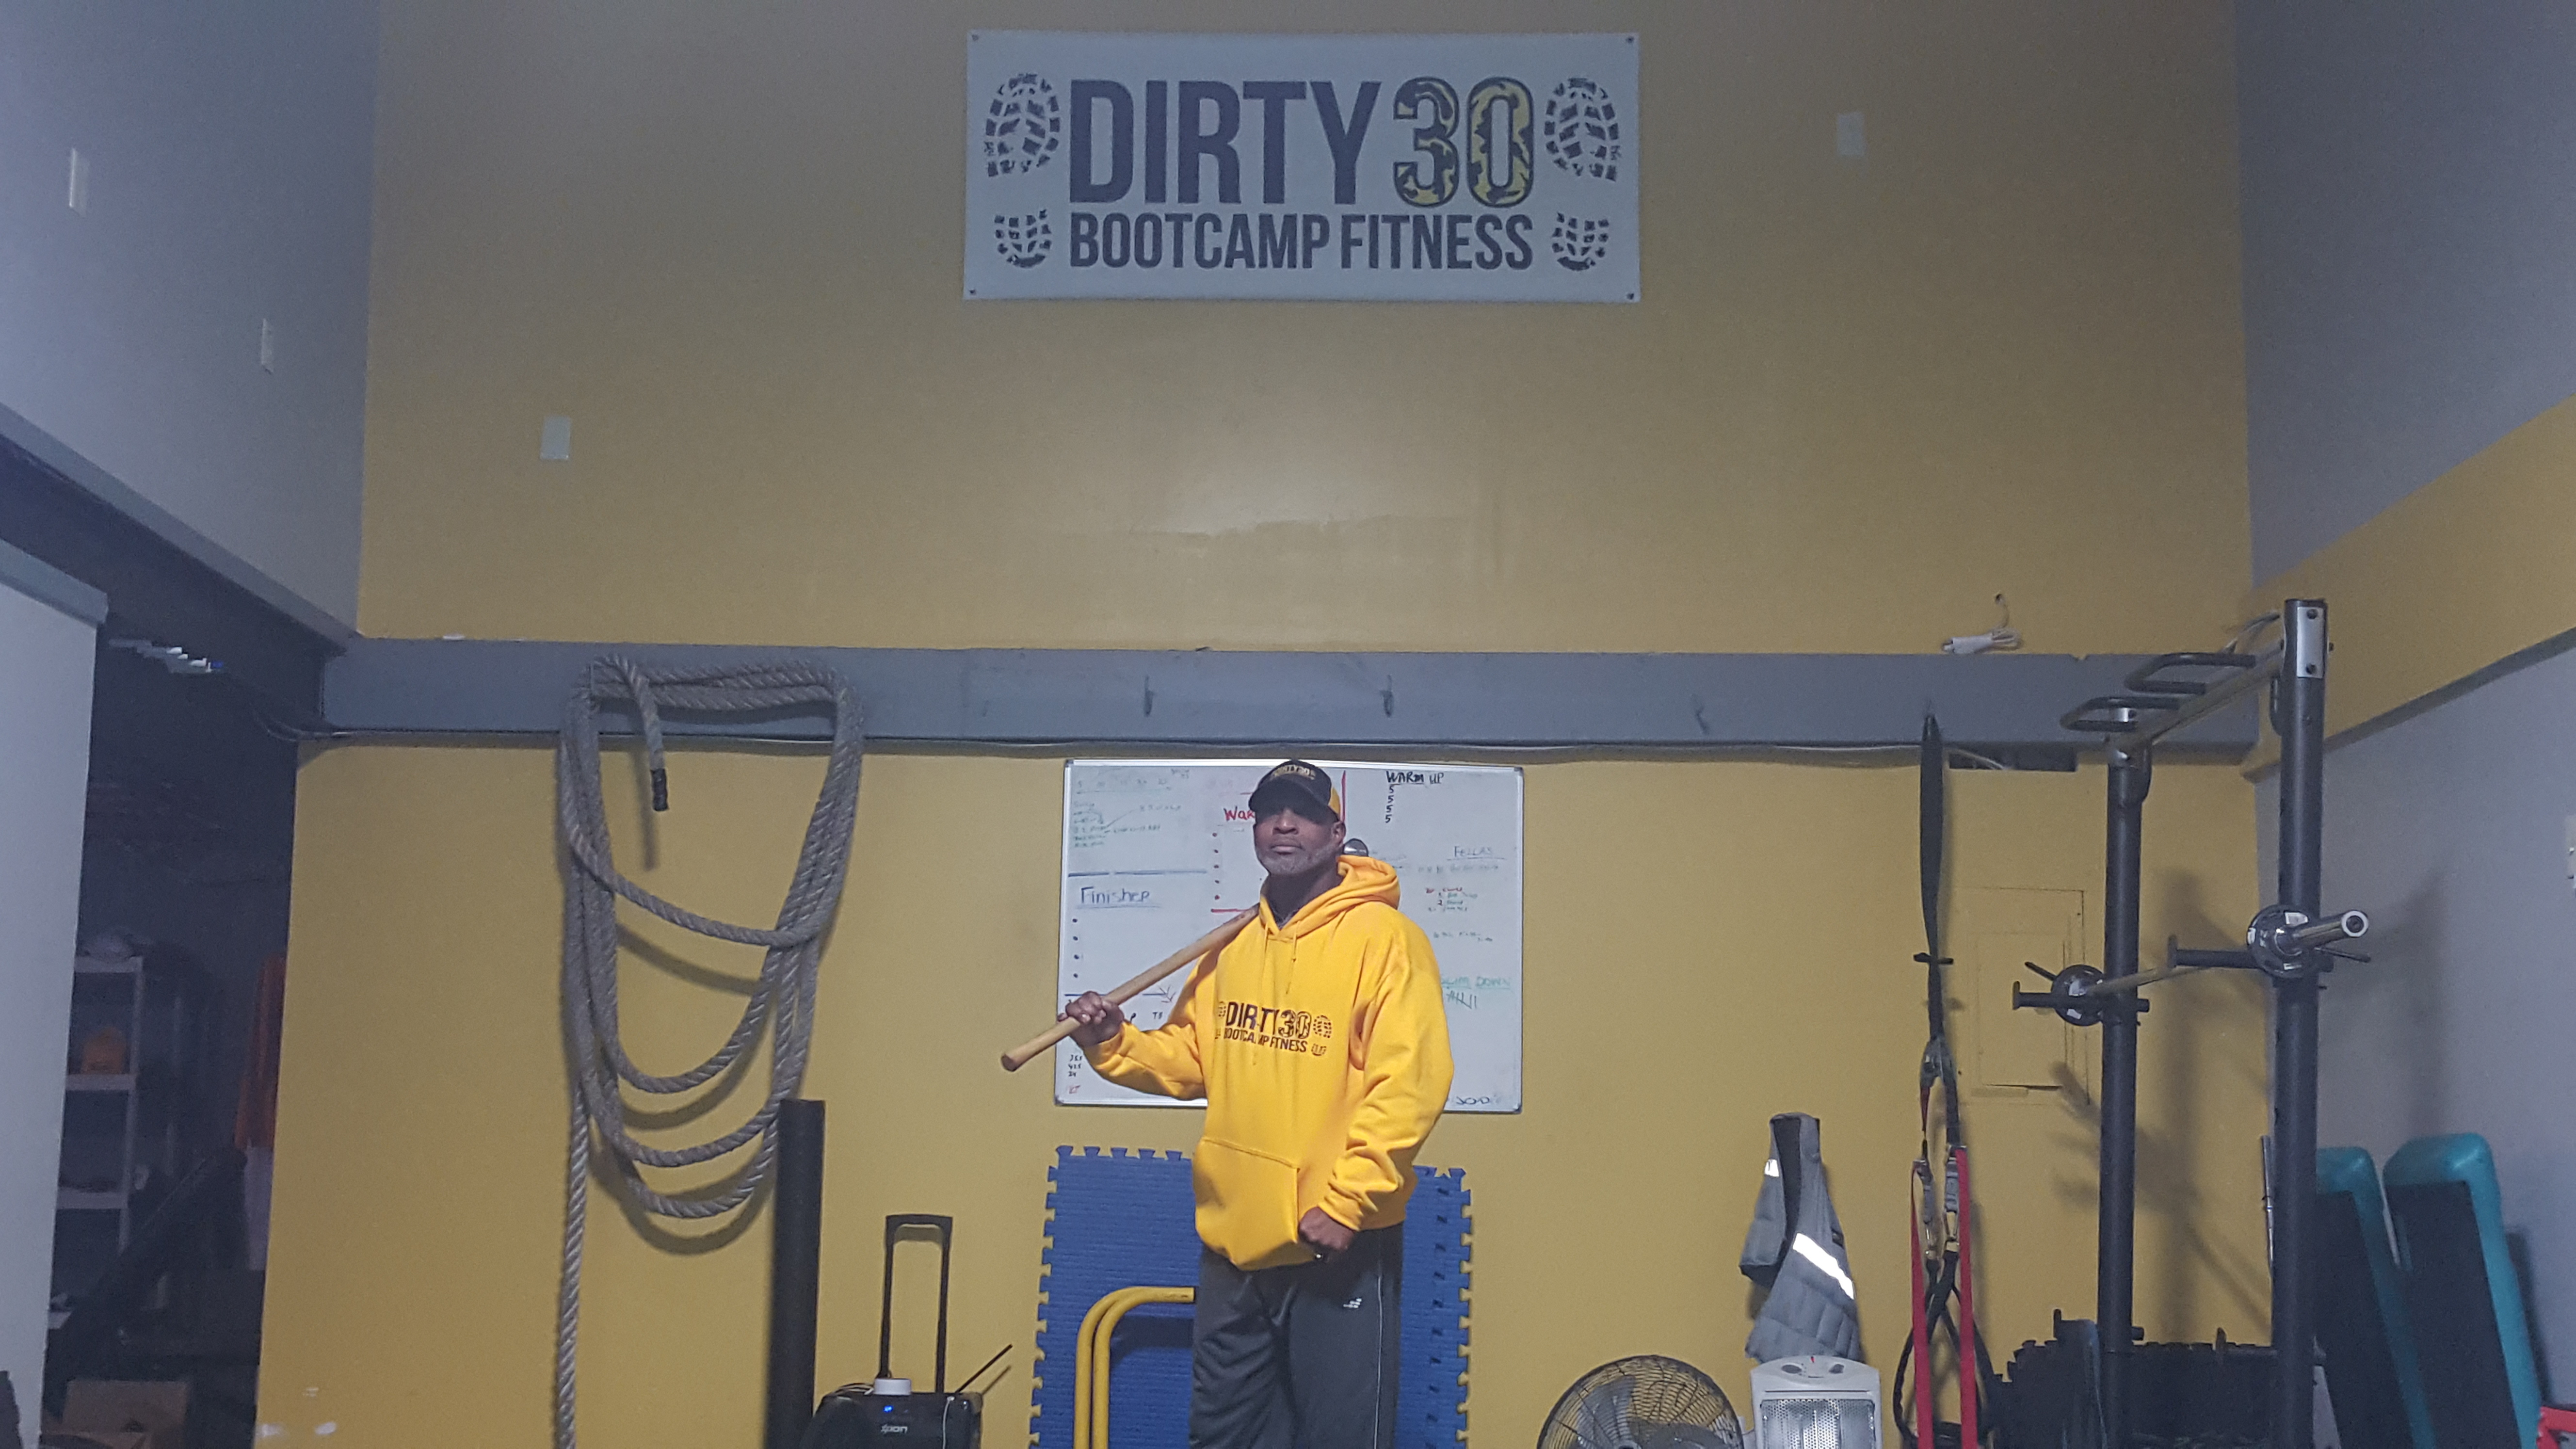 Jewels Of The City – Dirty 30 Bootcamp Fitness